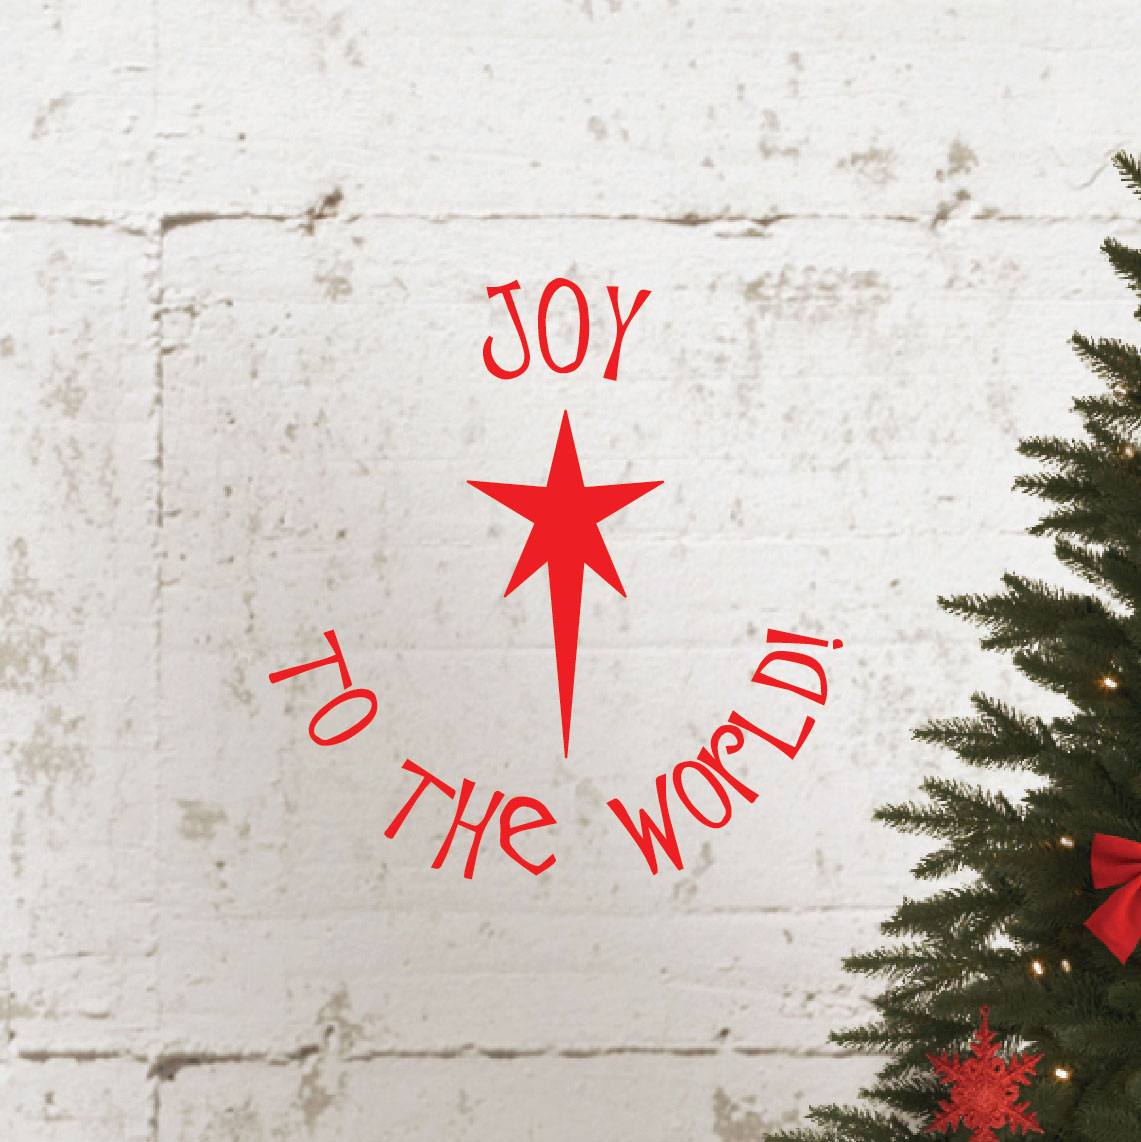 1338-joy-to-the-world-wall-decal-red-star.jpg